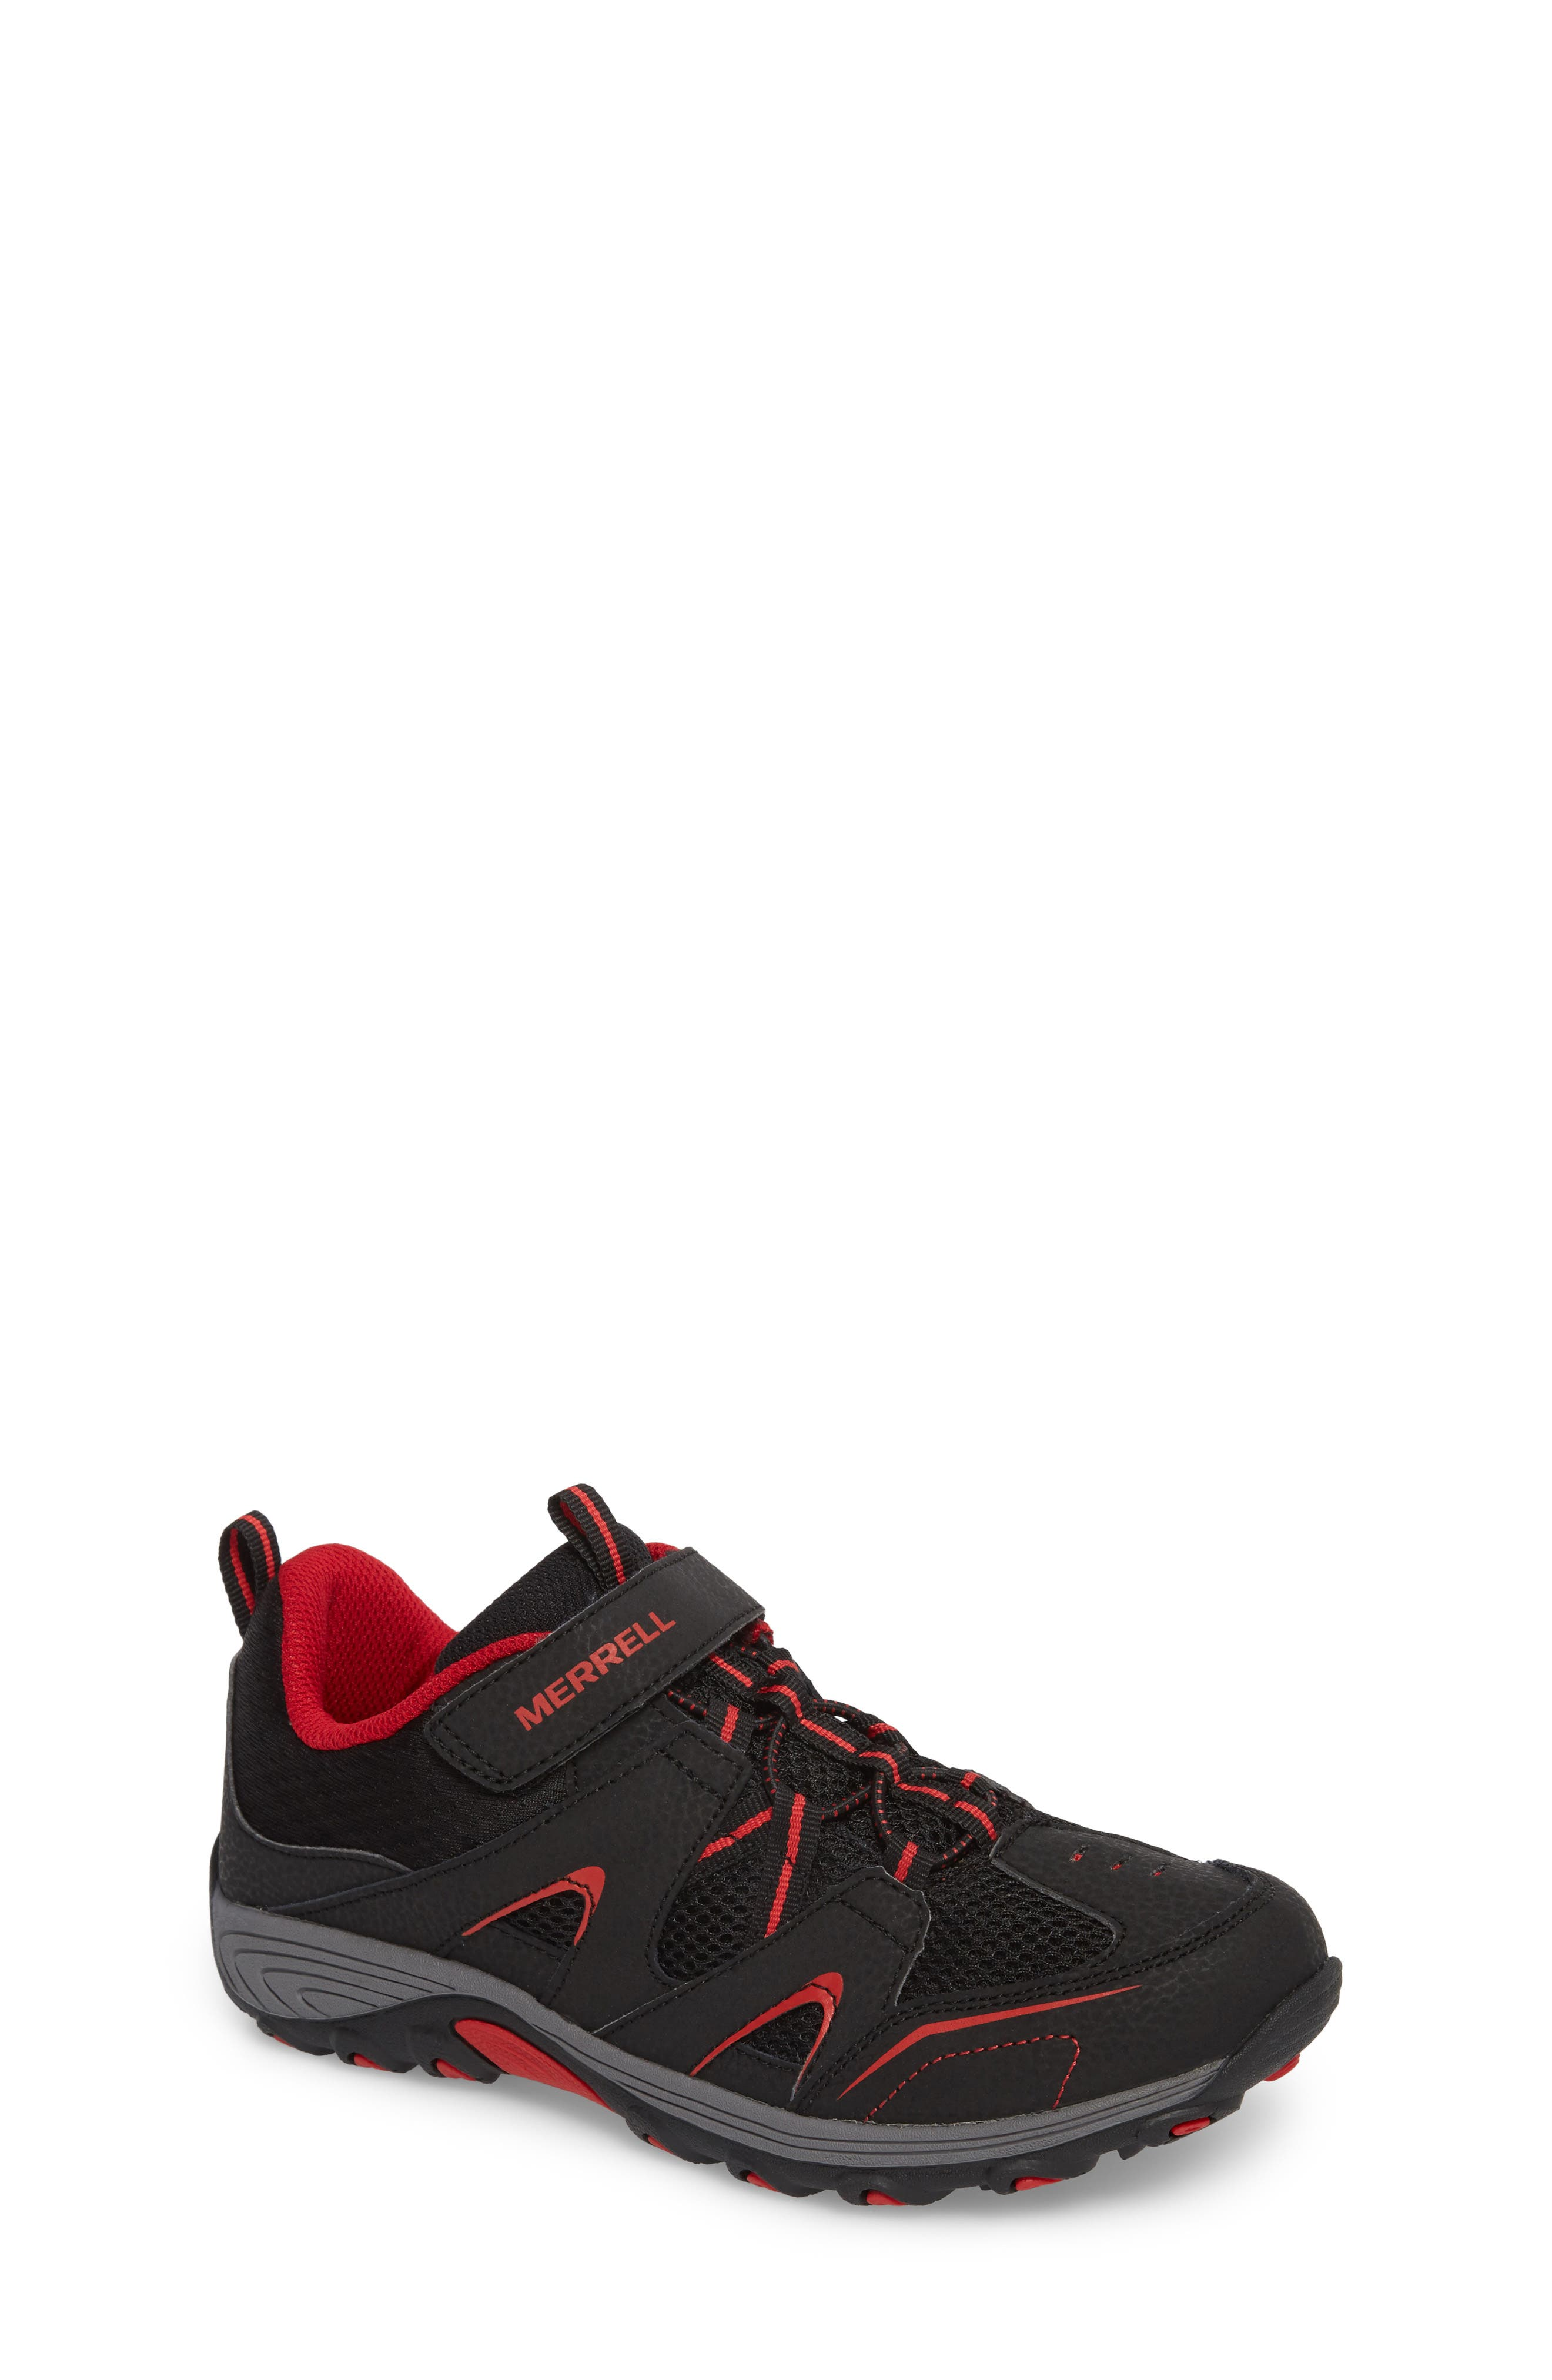 Trail Chaser Sneaker,                         Main,                         color,